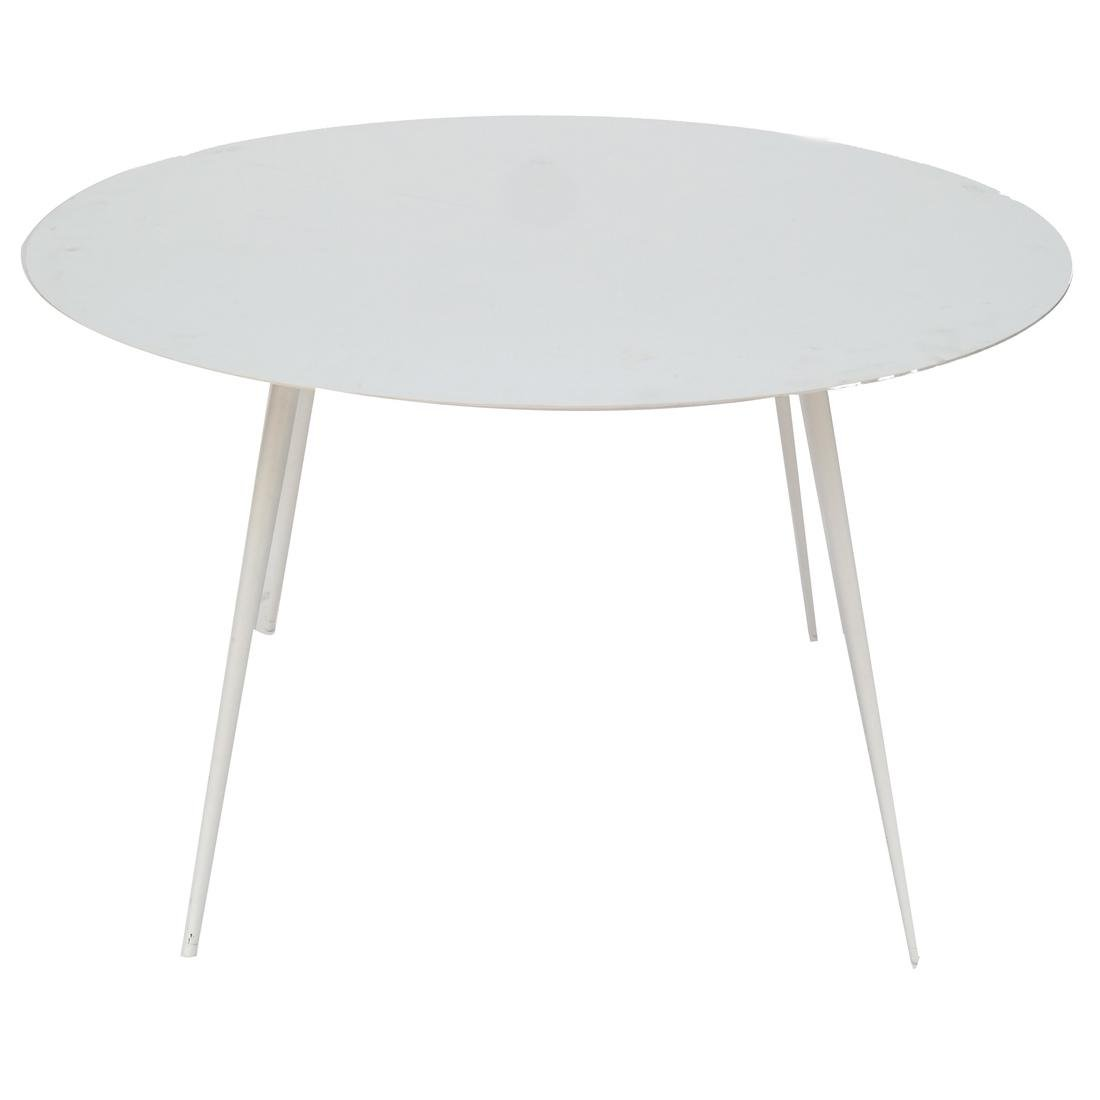 Contemporary Dining Table by Spillo